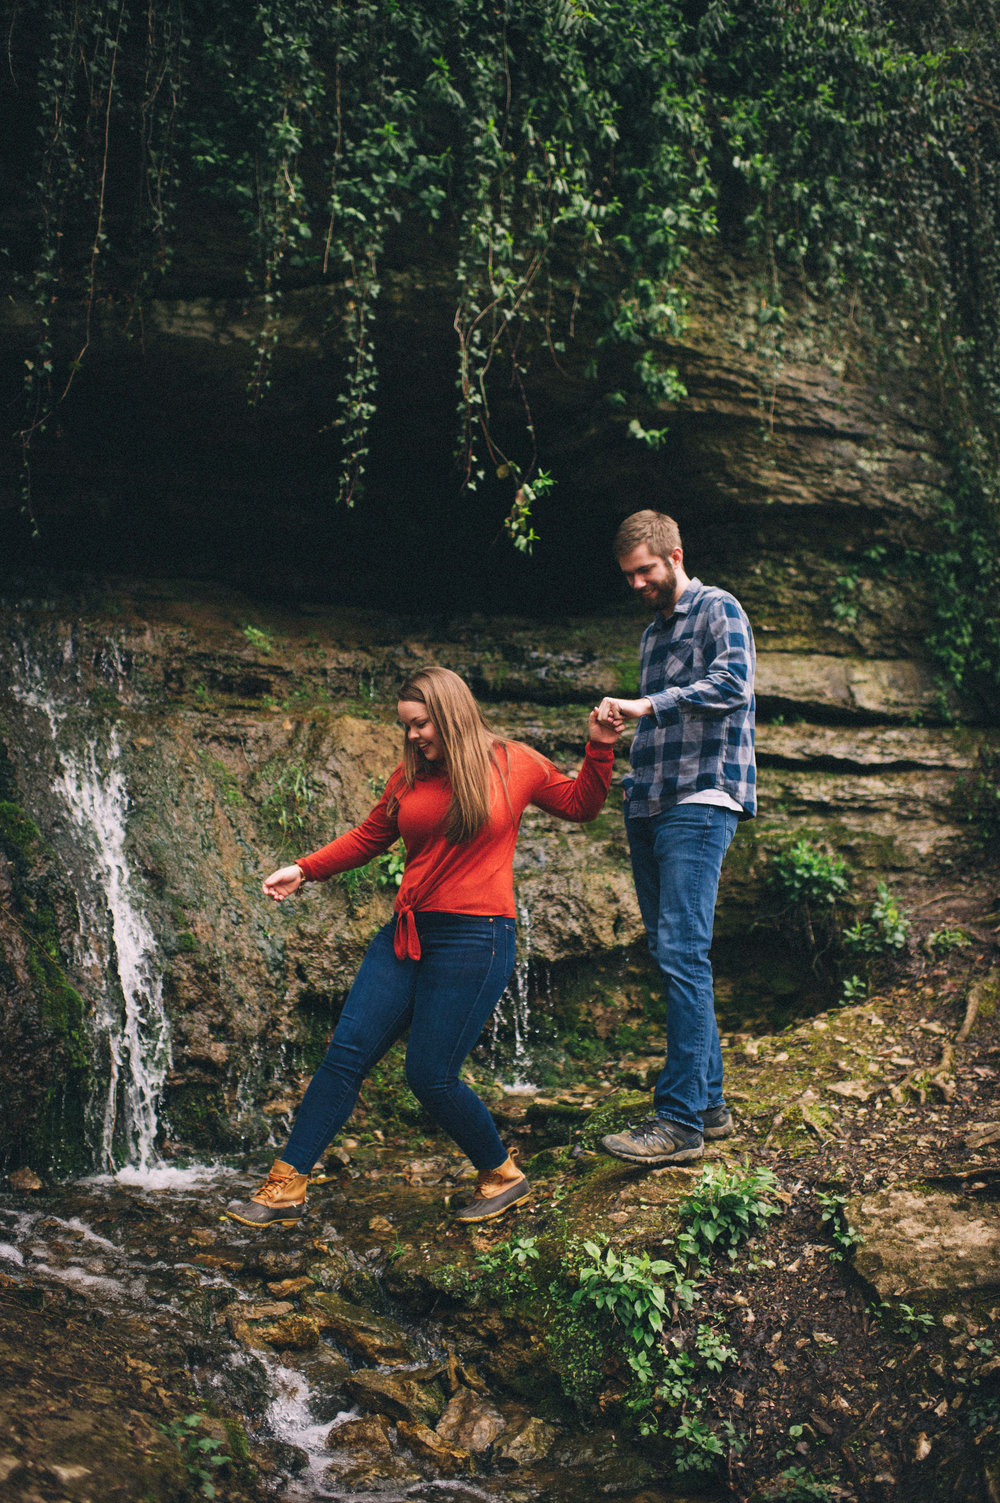 Maggie + Corey Adventurous Engagement Session- Sarah Katherine Davis Photography - Cherokee Park Hike - Louisville Kentucky - Crossing Stream